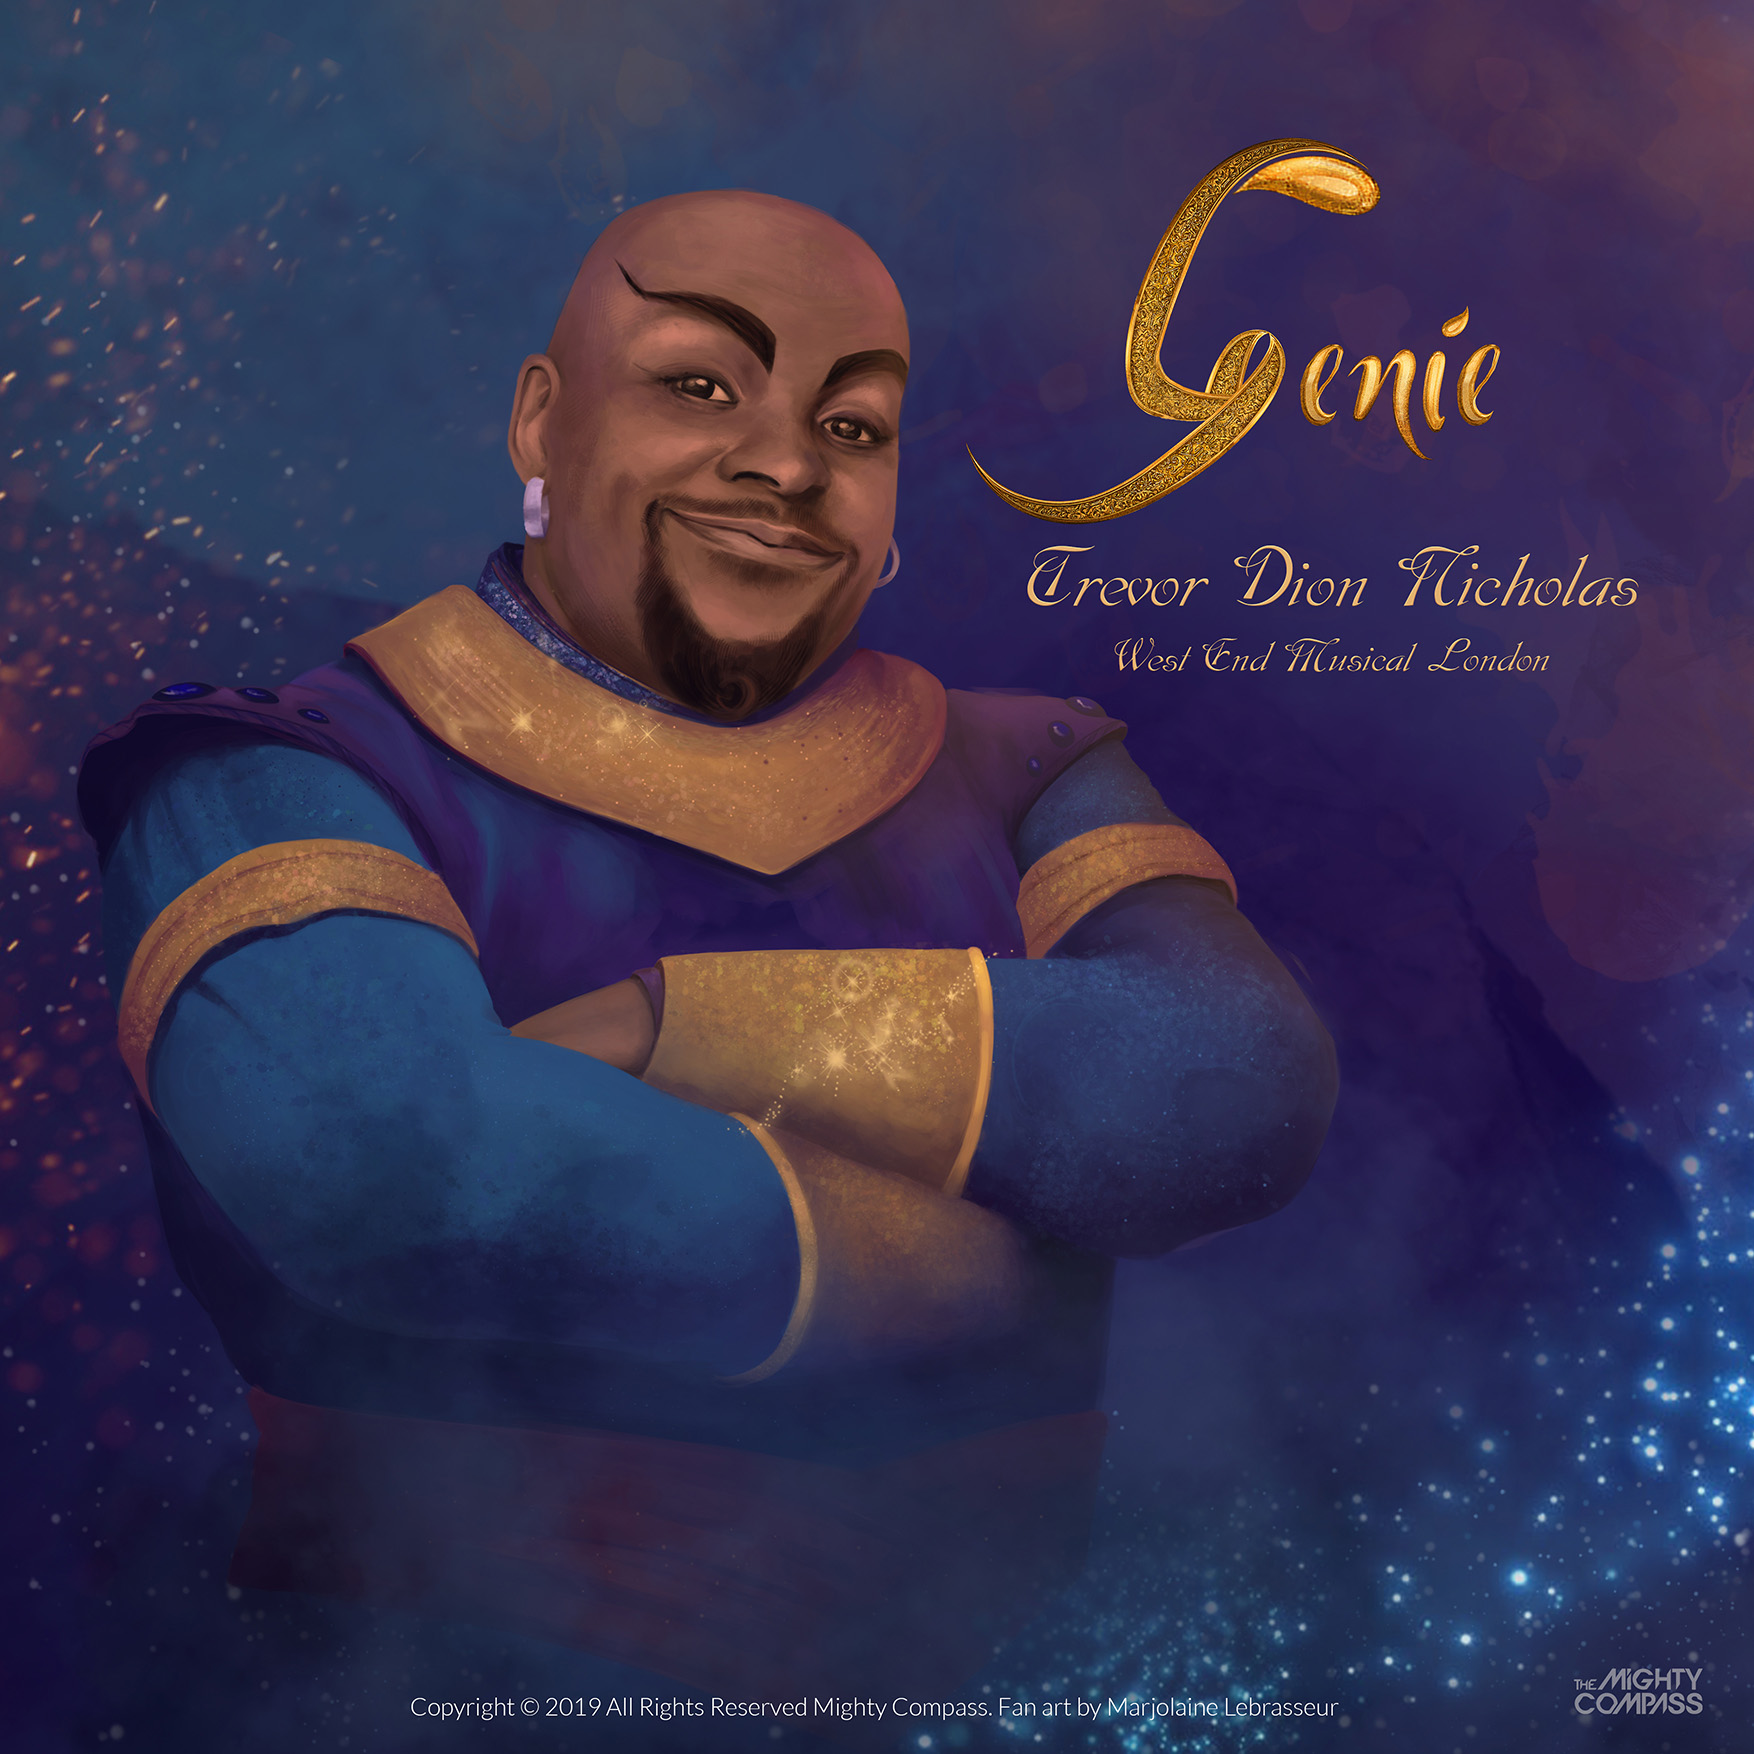 West End Genie